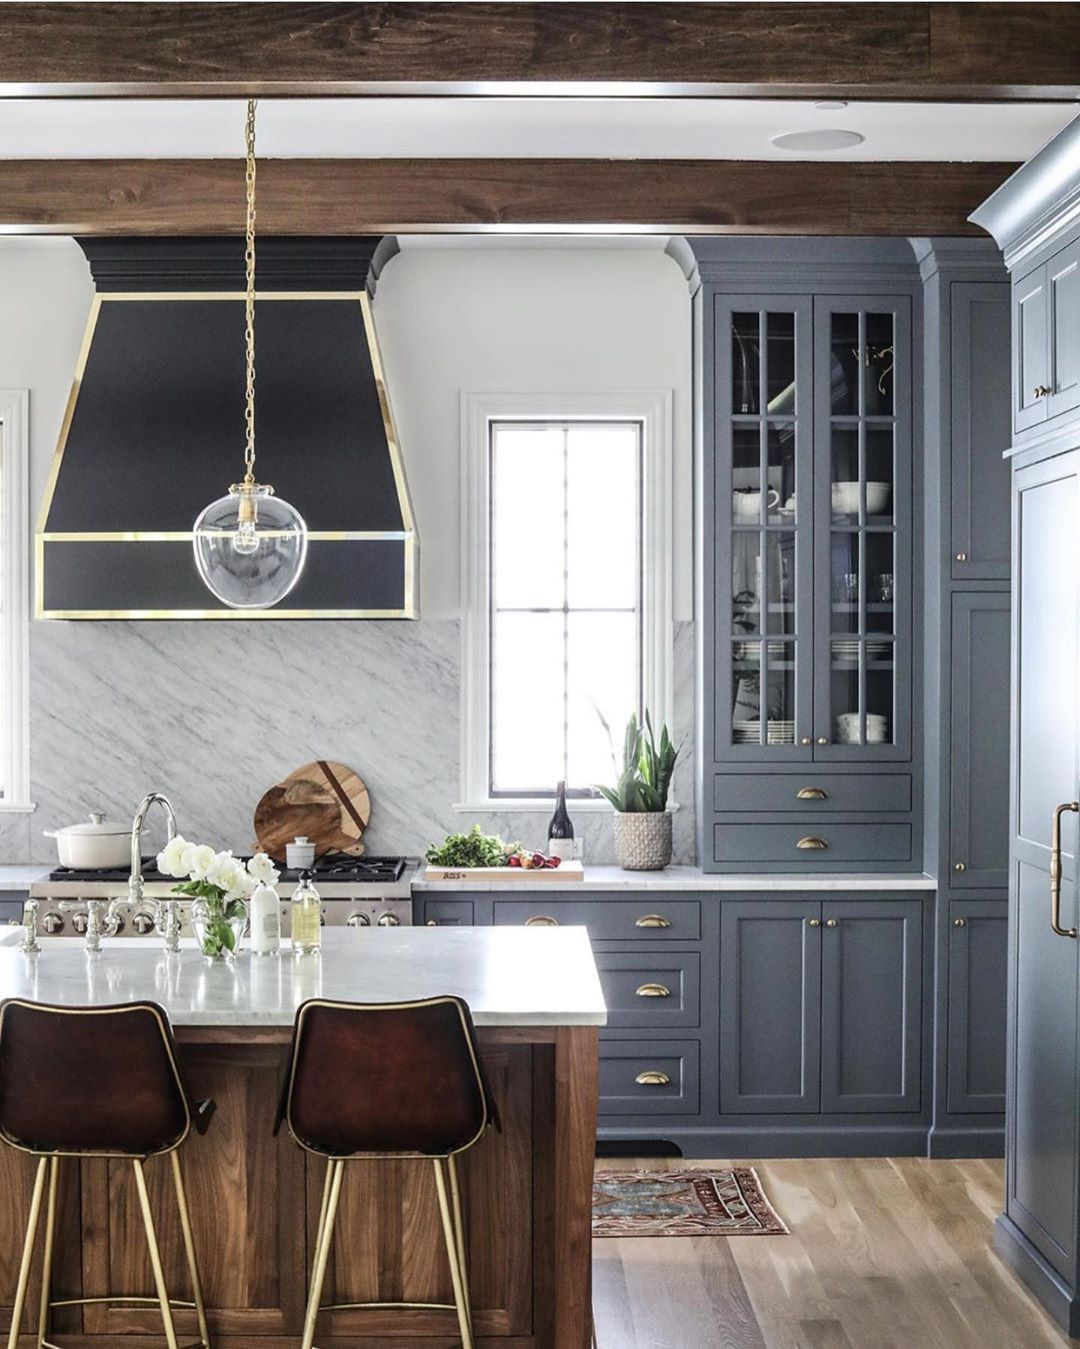 M M Lighting On Instagram Life Is Like Riding A Bicycle To Keep Your Balance You Must Keep Moving De Gray Cabinet Color Cabinet Colors Gorgeous Kitchens